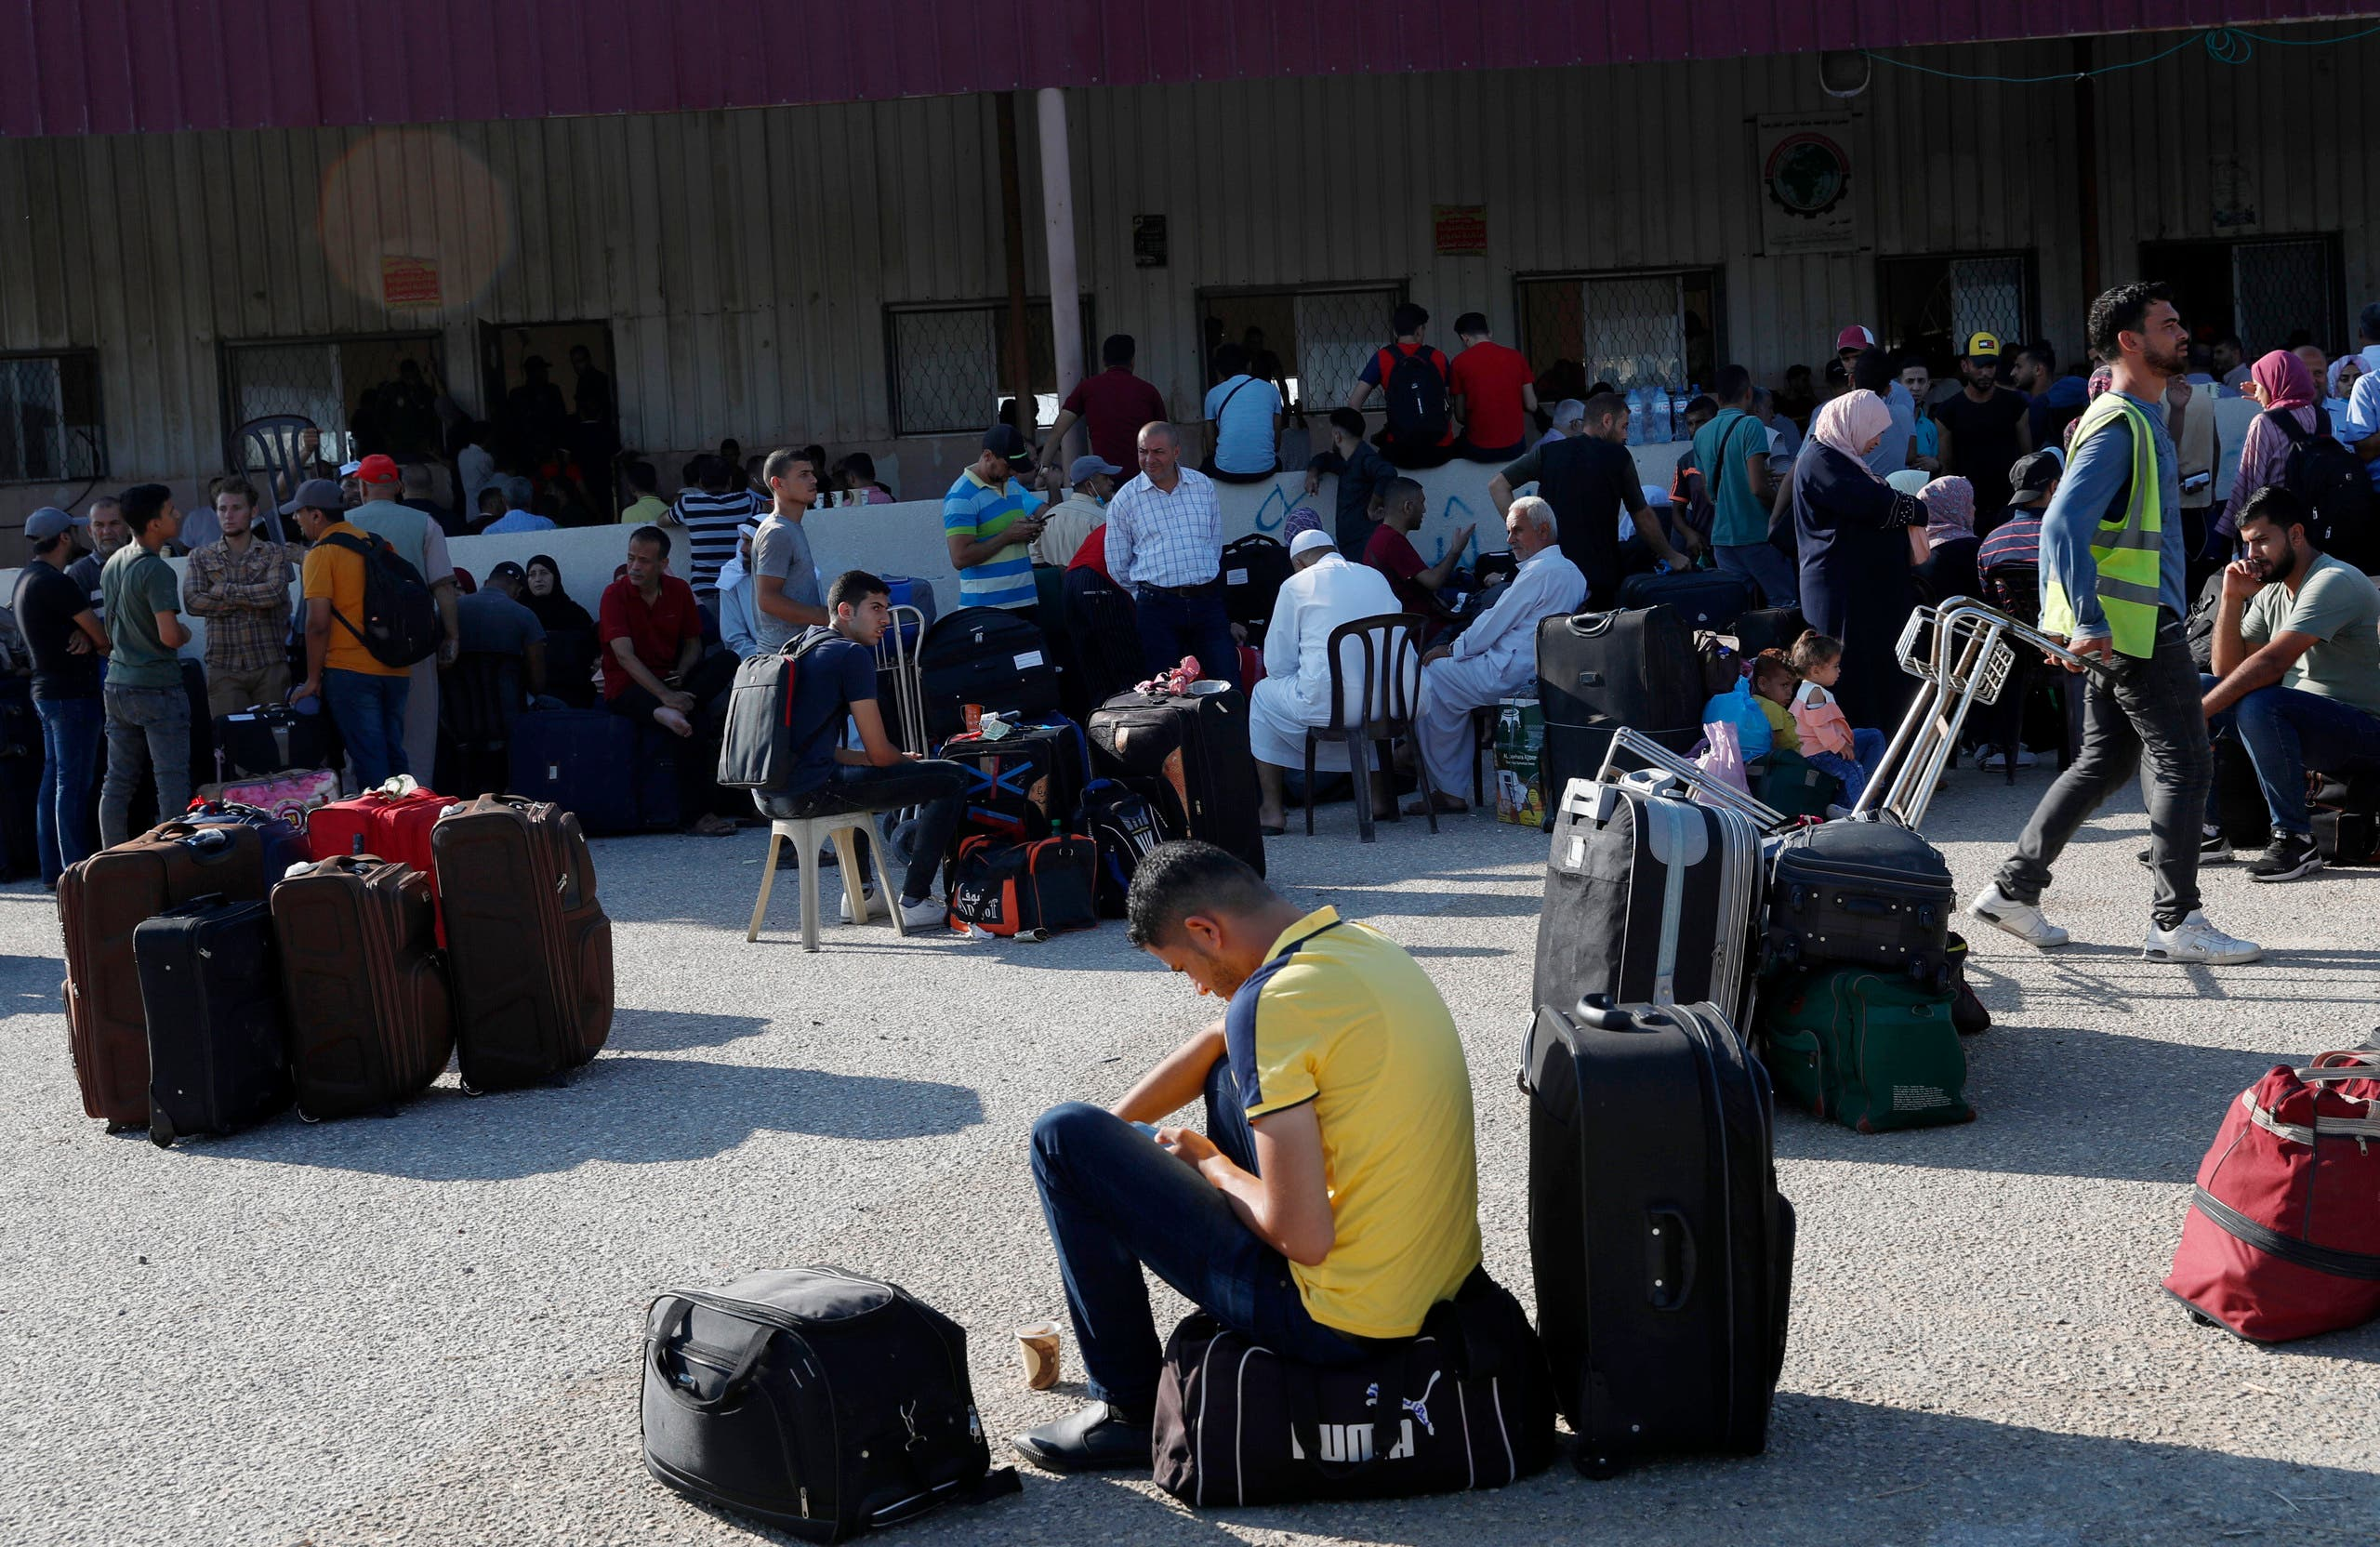 Passengers sit next to their luggage as they wait to cross the border to the Egyptian side of Rafah crossing, in Rafah, Gaza Strip, Tuesday, Aug. 11, 2020. (AP)